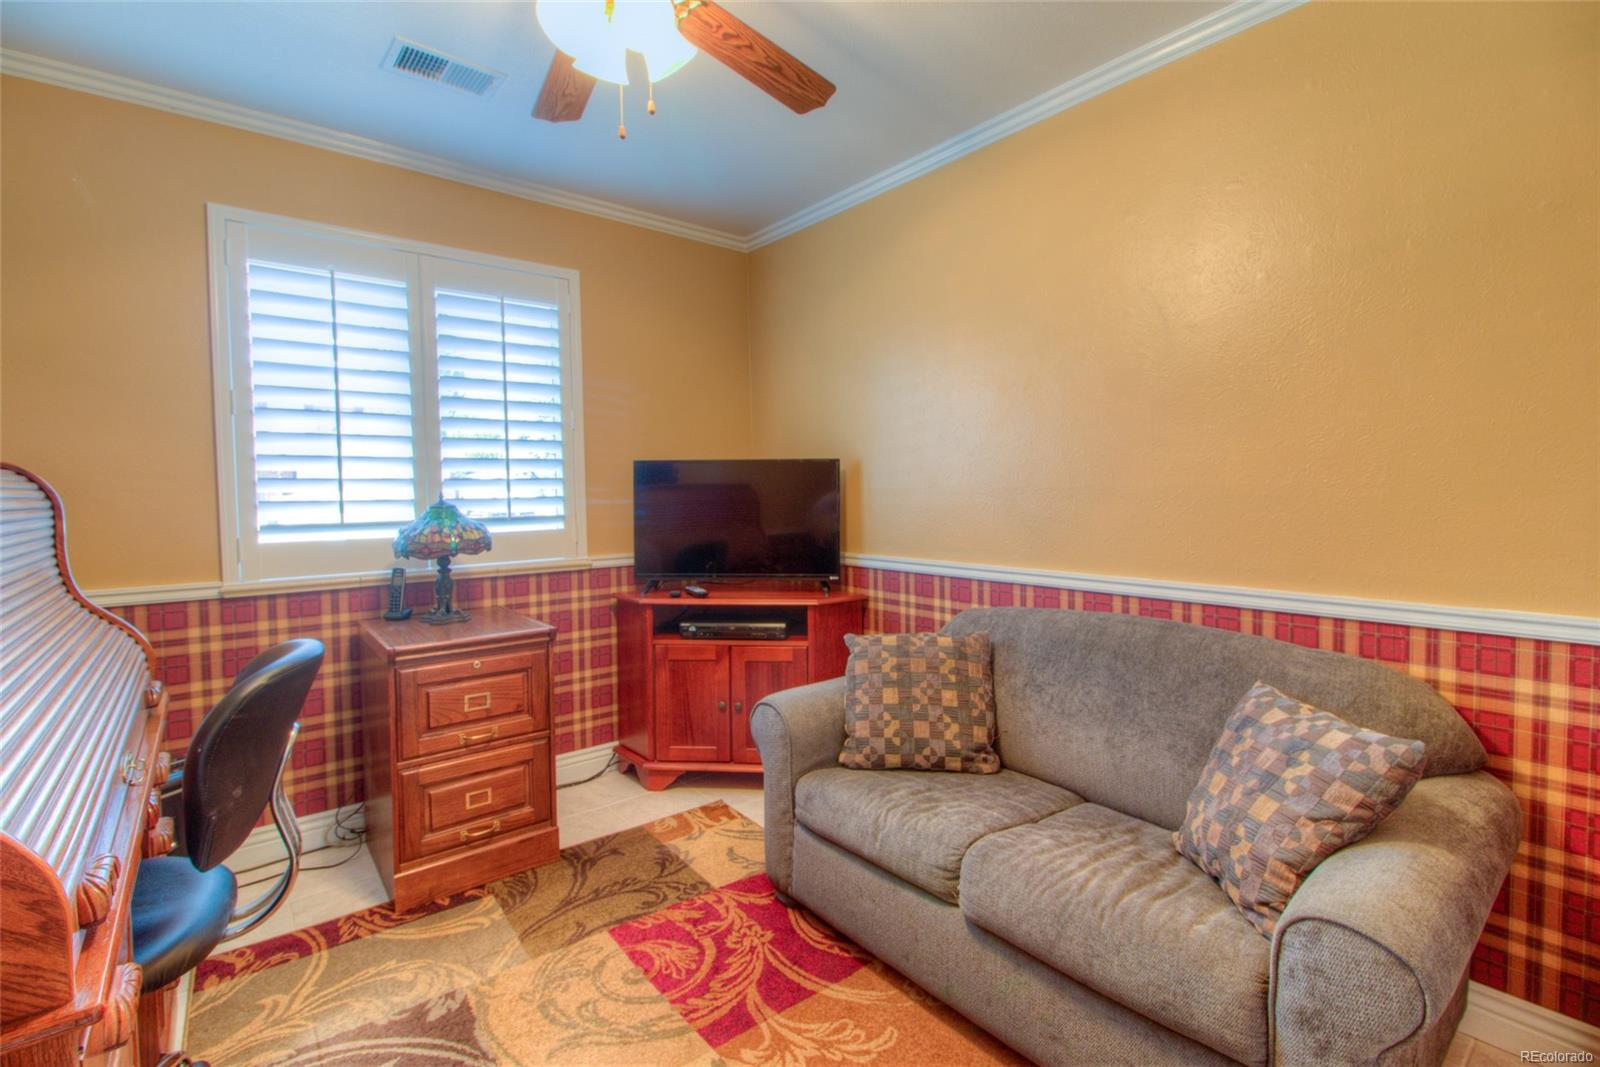 Lower level 4th Bedroom with tile floor, plantation shutters and a walk-in closet